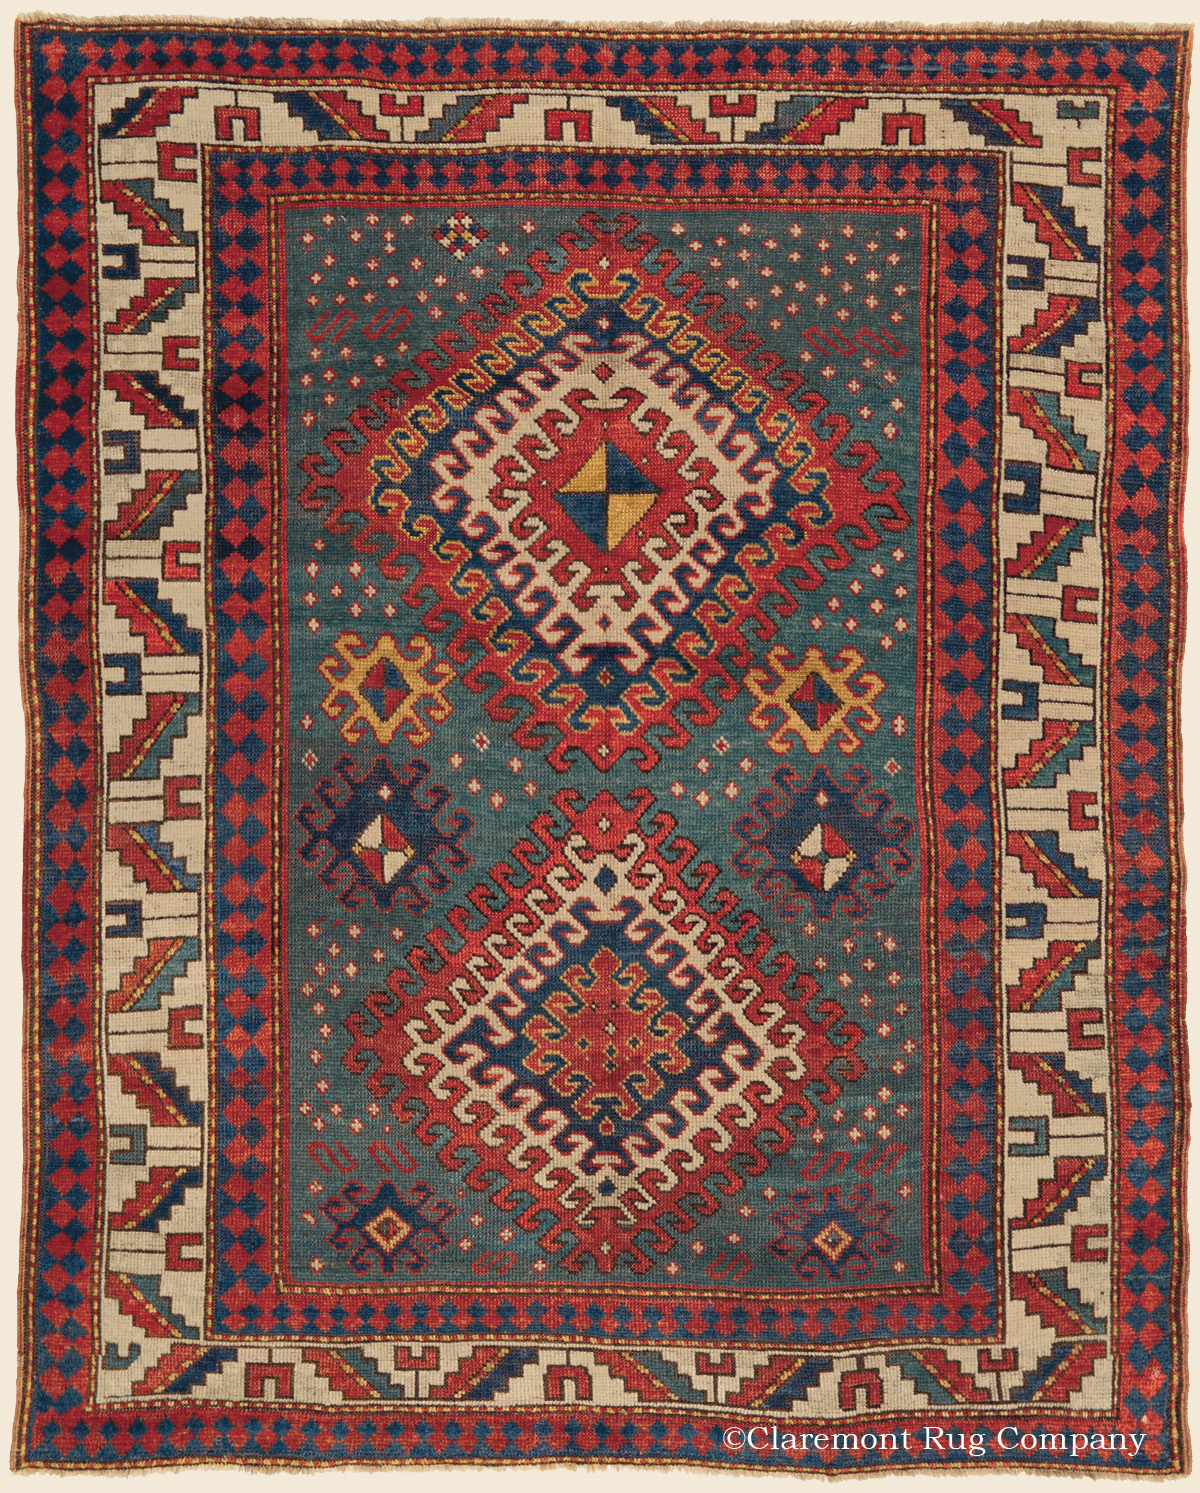 Rare 19th Century Bordjalou Kazak Caucasian Tribal Rug on an abrash teal green ground